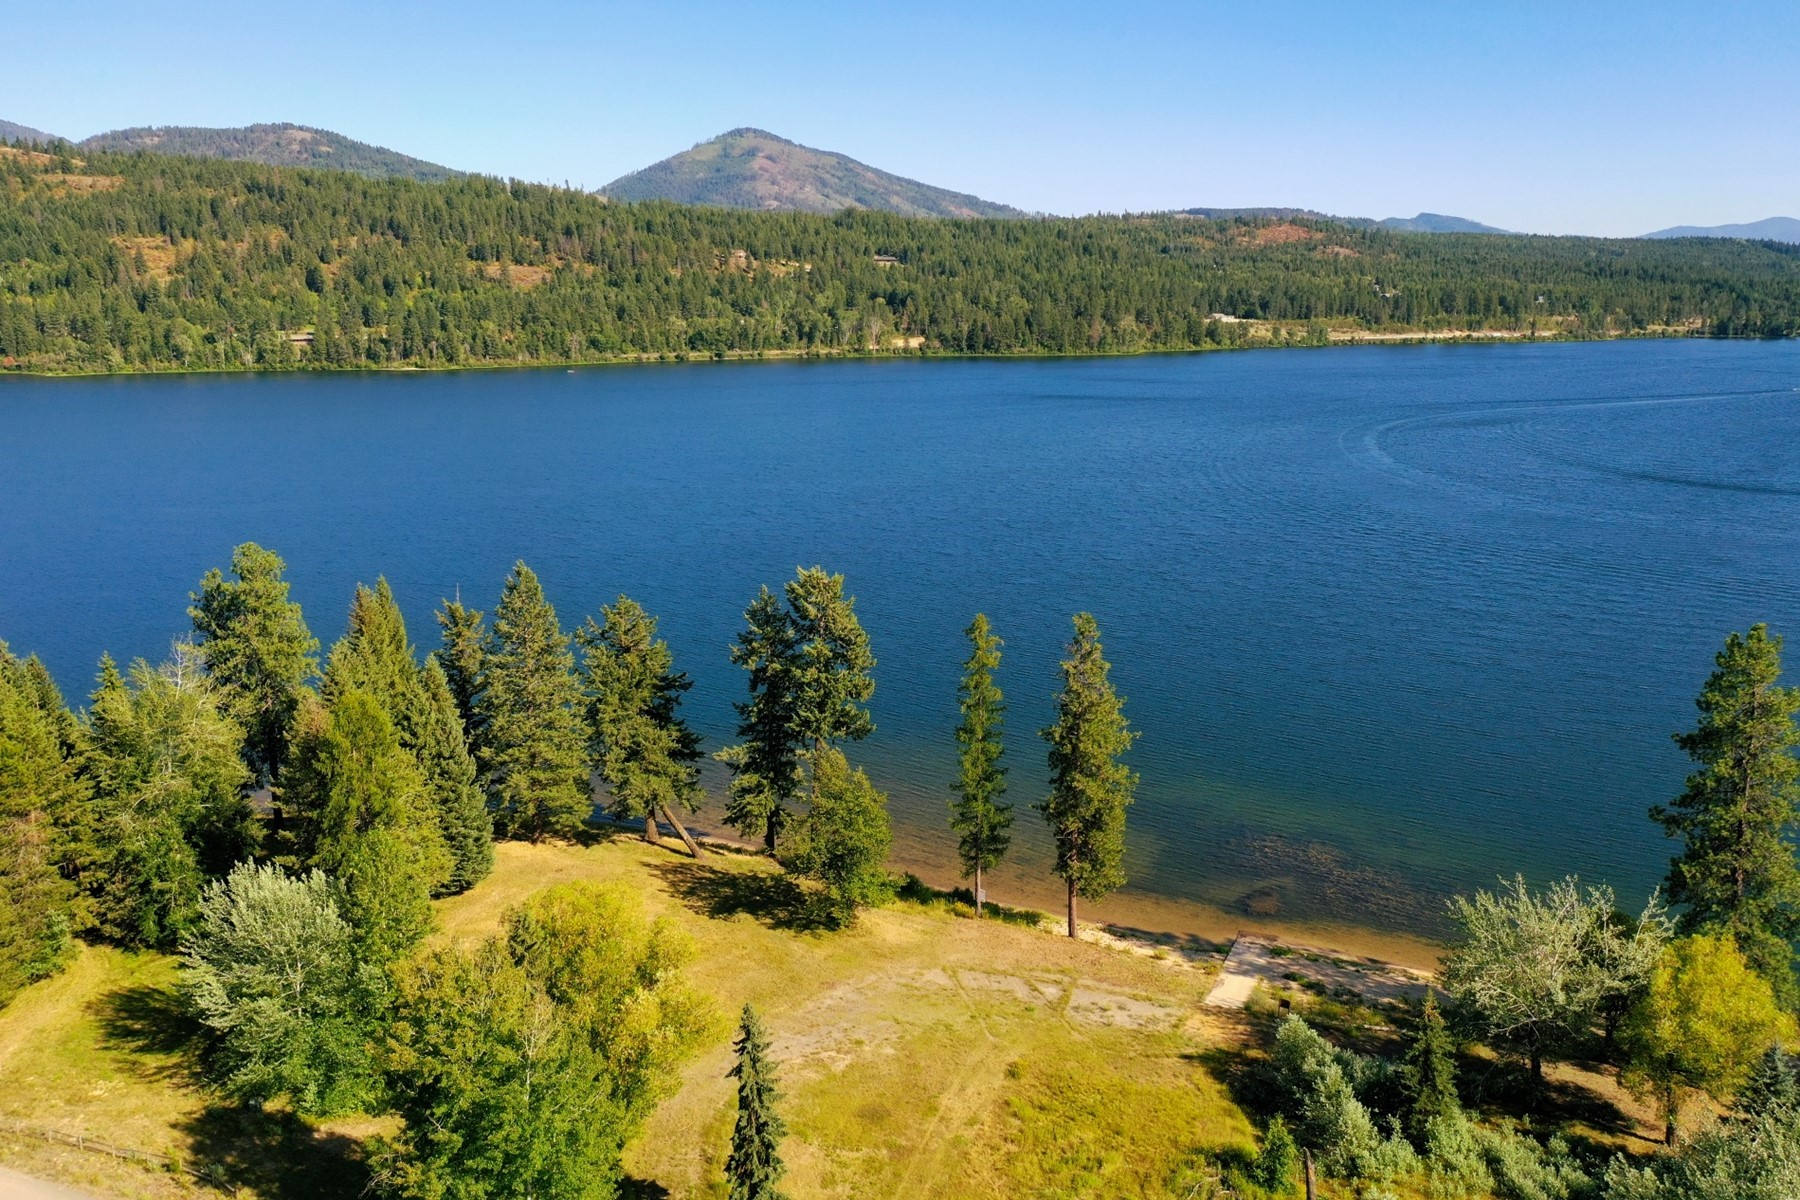 Terreno por un Venta en Your own private sandy beach on Lake Cocolalla, Lot 1 Lot 1 Sandy Beach Ln Cocolalla, Idaho 83813 Estados Unidos